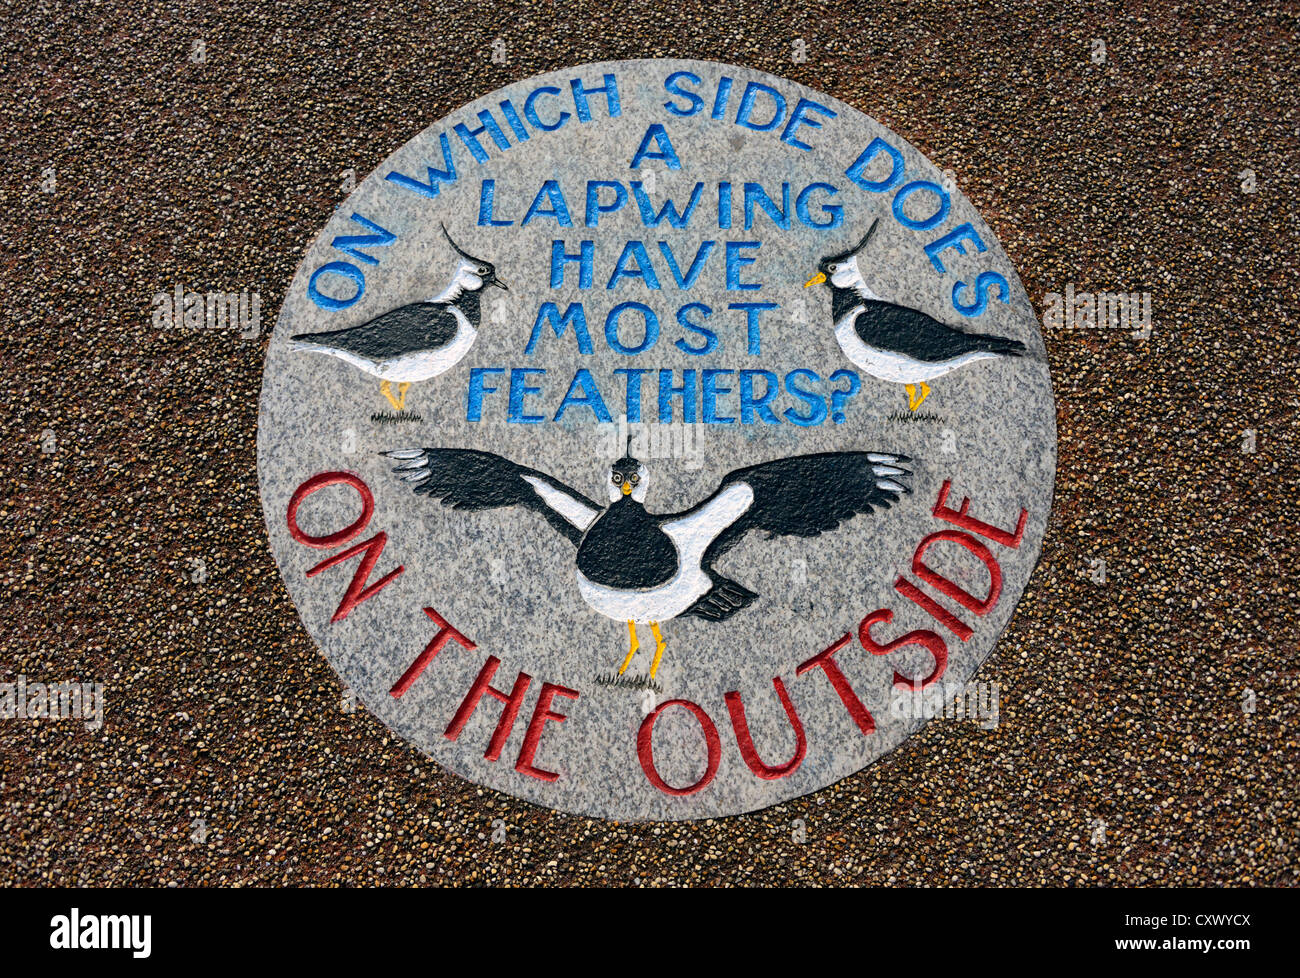 'WHICH SIDE DOES A LAPWING HAVE MOST FEATHERS?  ON THE OUTSIDE'. The Tern Project, The Stone Jetty, Morecambe, - Stock Image